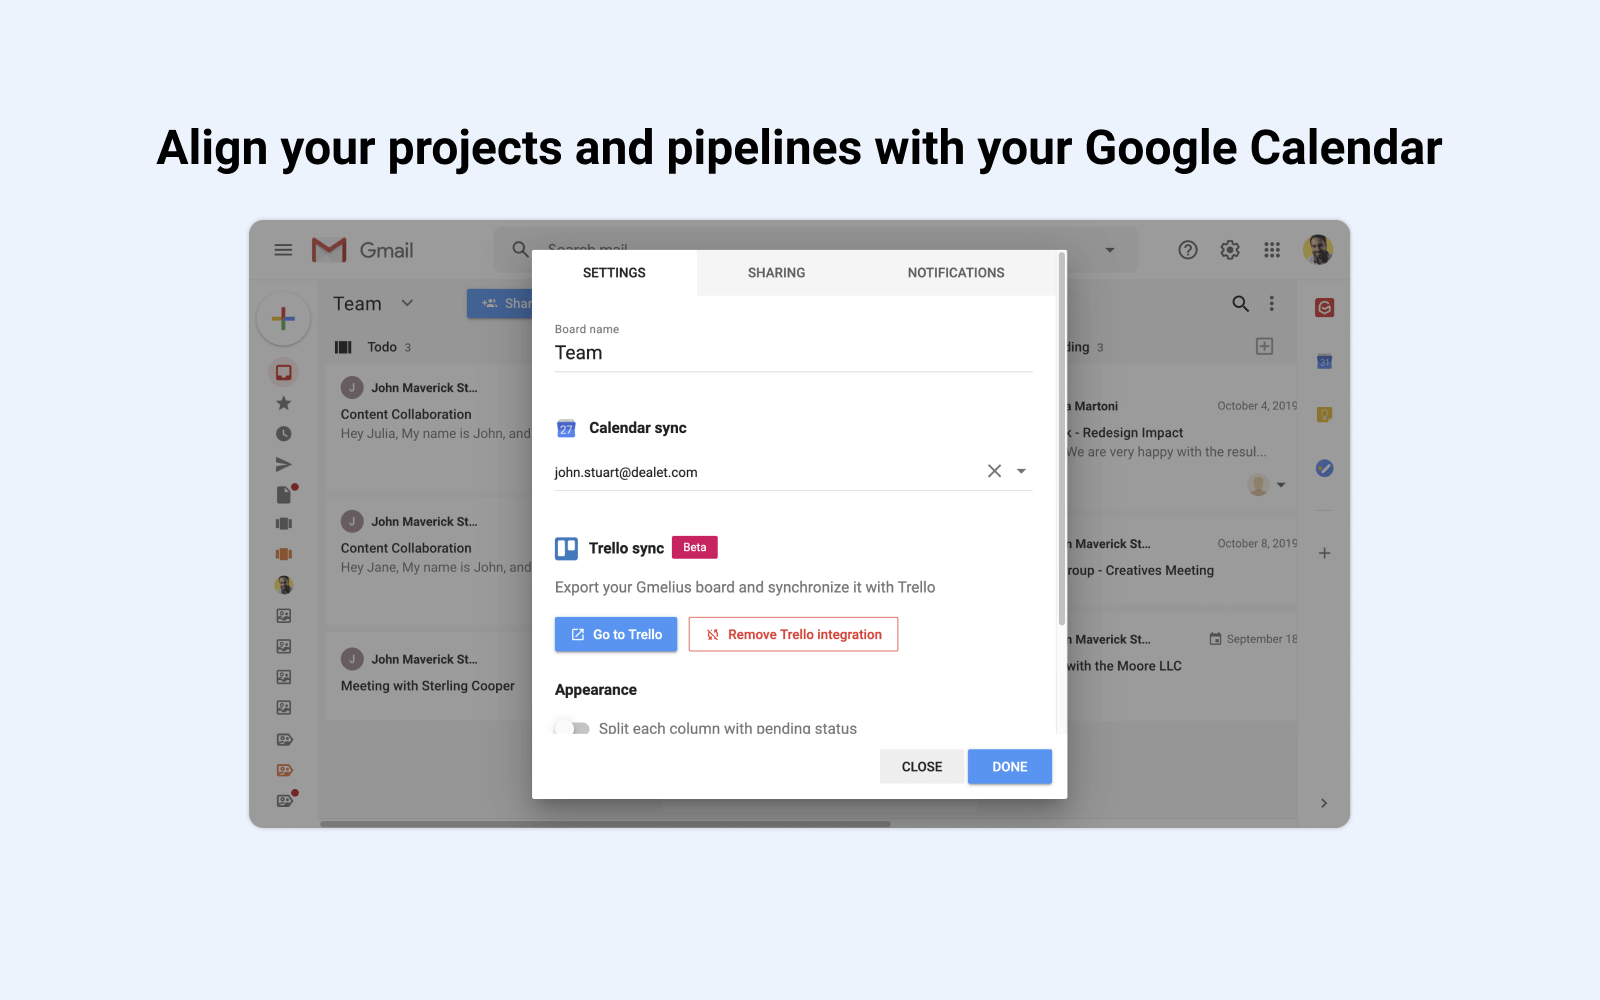 Align projects with Google Calendar